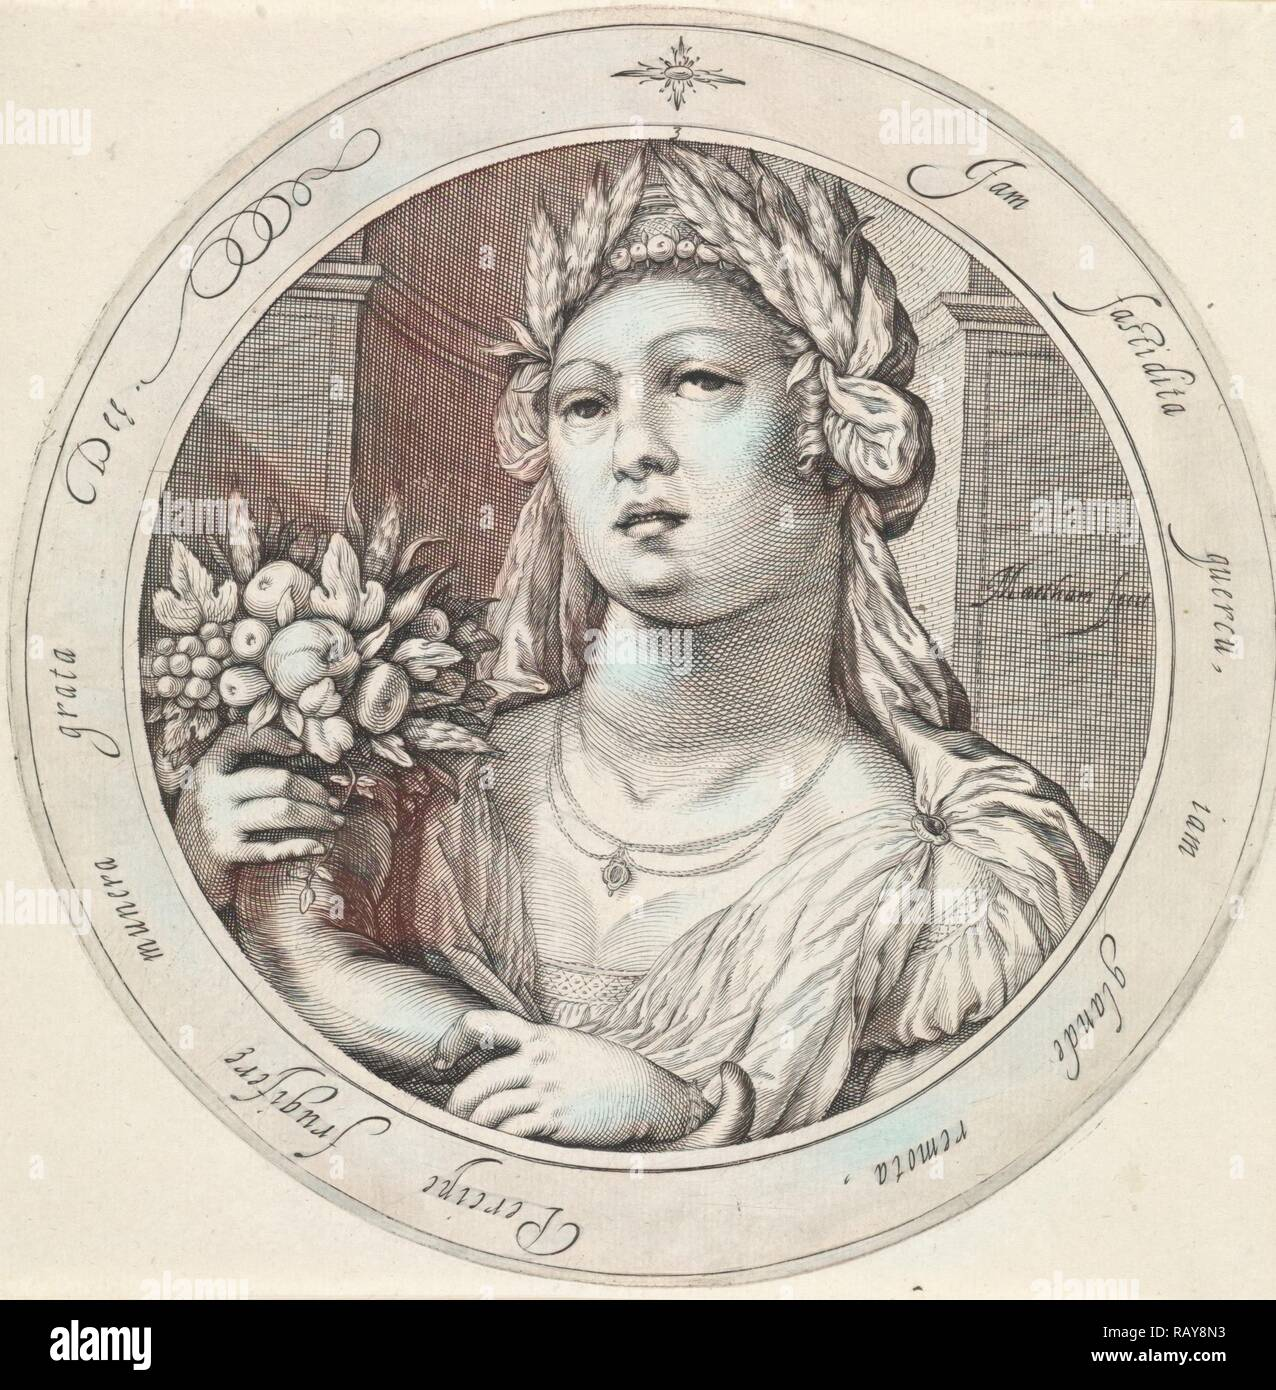 Ceres with cornucopia, Jacob Matham, 1599 - 1600. Reimagined by Gibon. Classic art with a modern twist reimagined - Stock Image